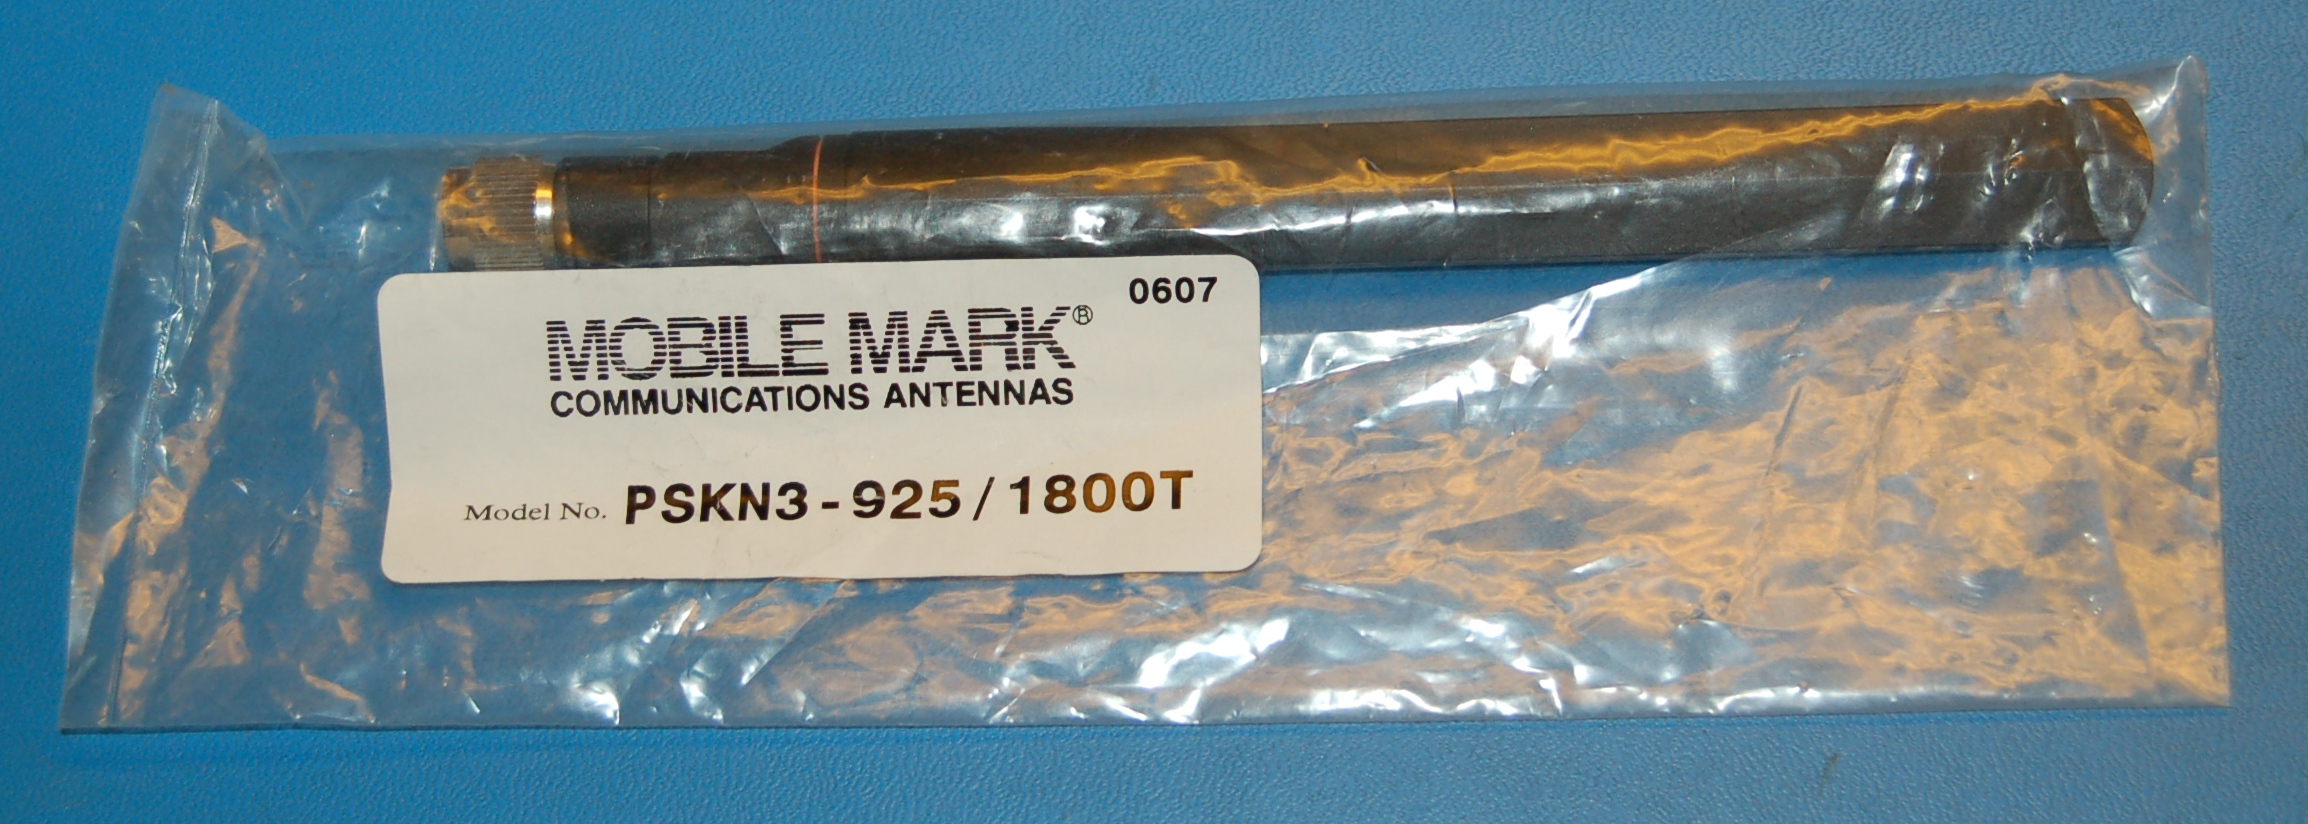 Mobile-Mark PKSN3 Antenna, Dual-Band, TNC